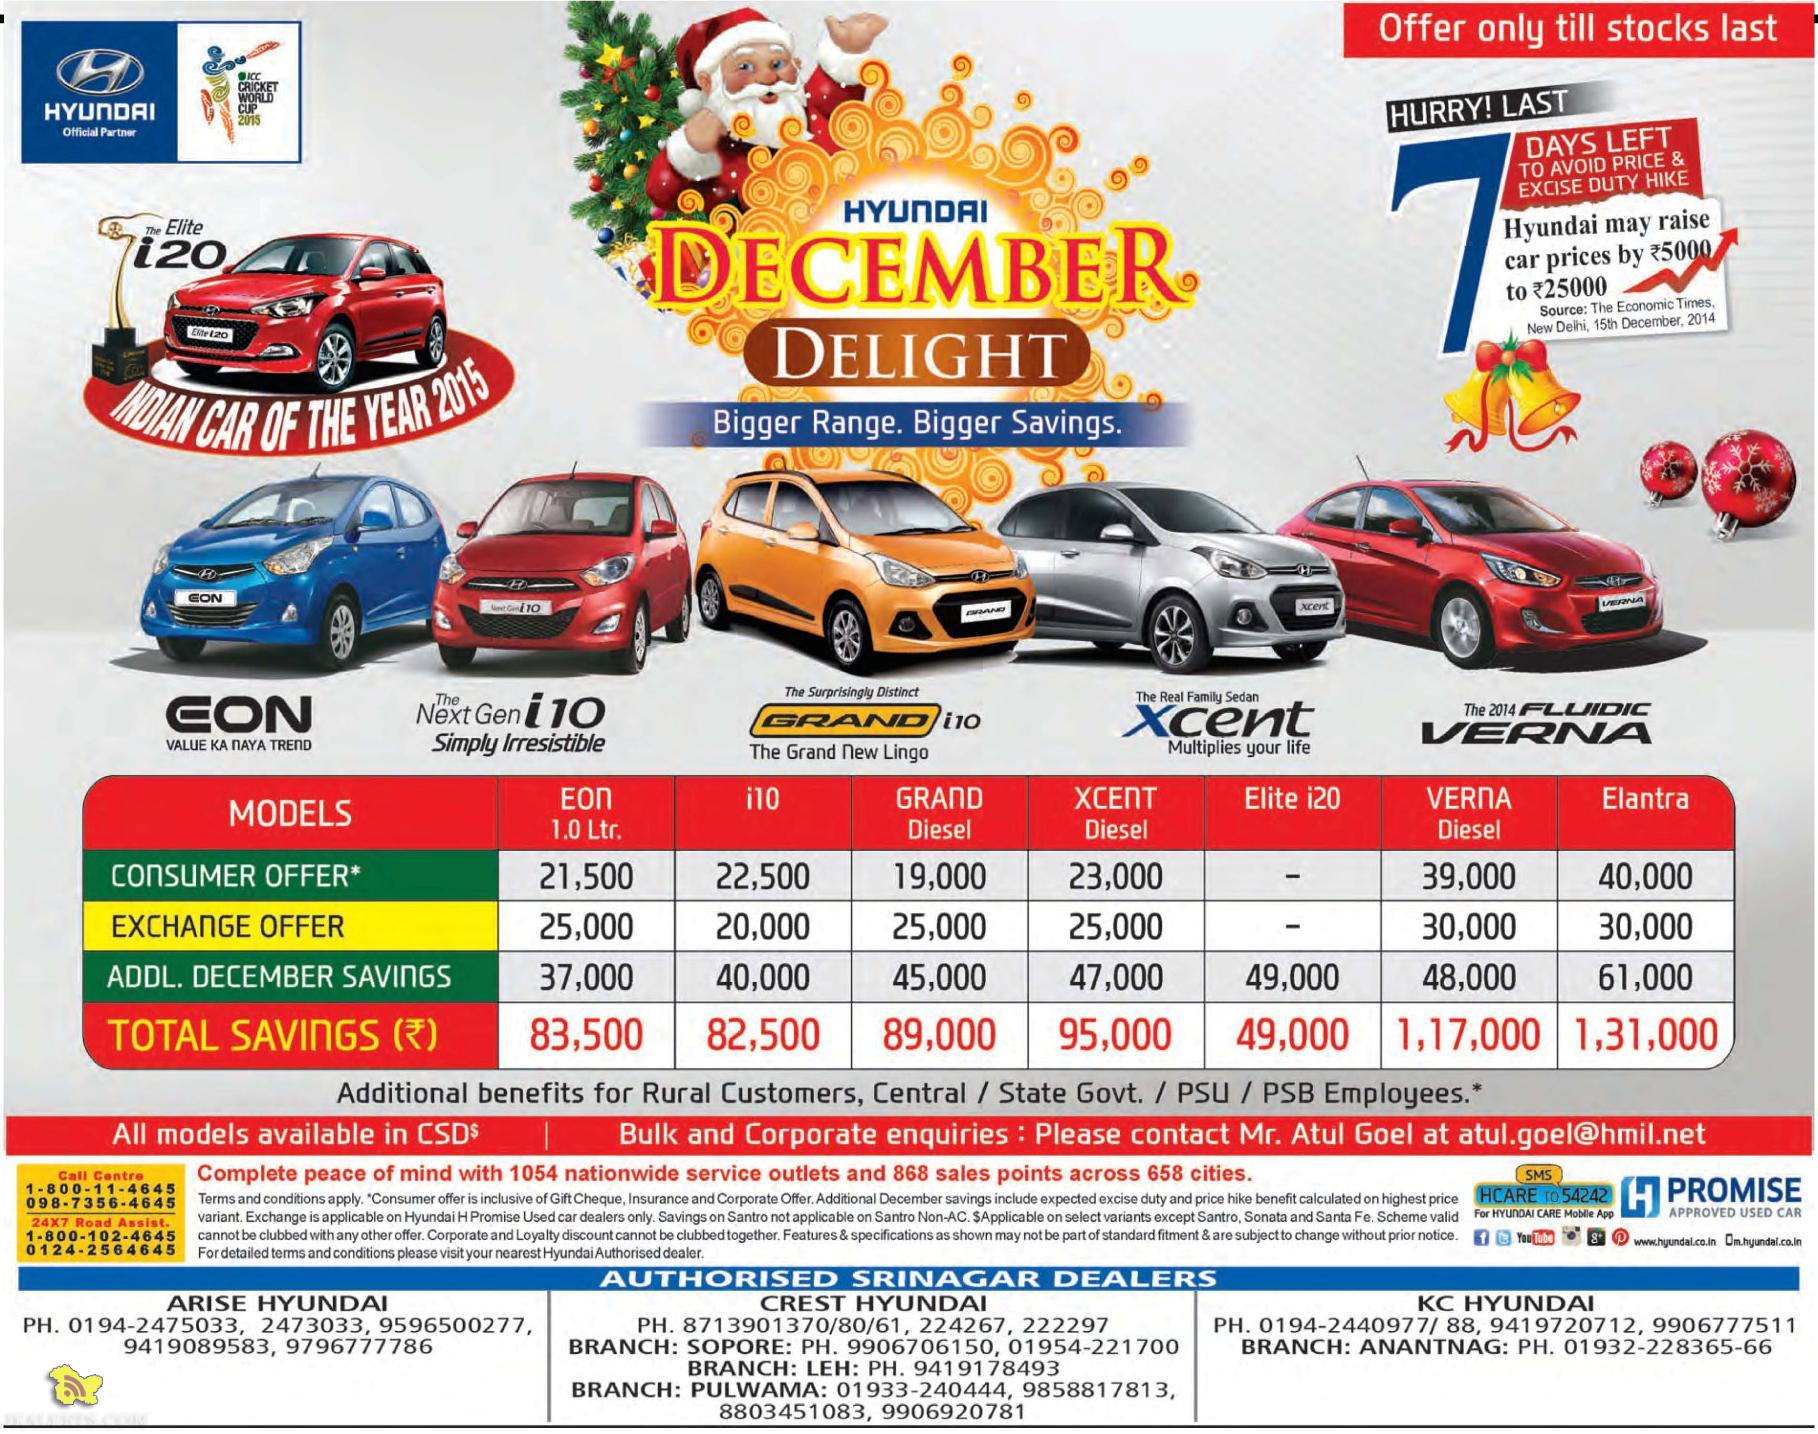 Hyundai December Delight Offer on hyundai authorized dealers in J&K